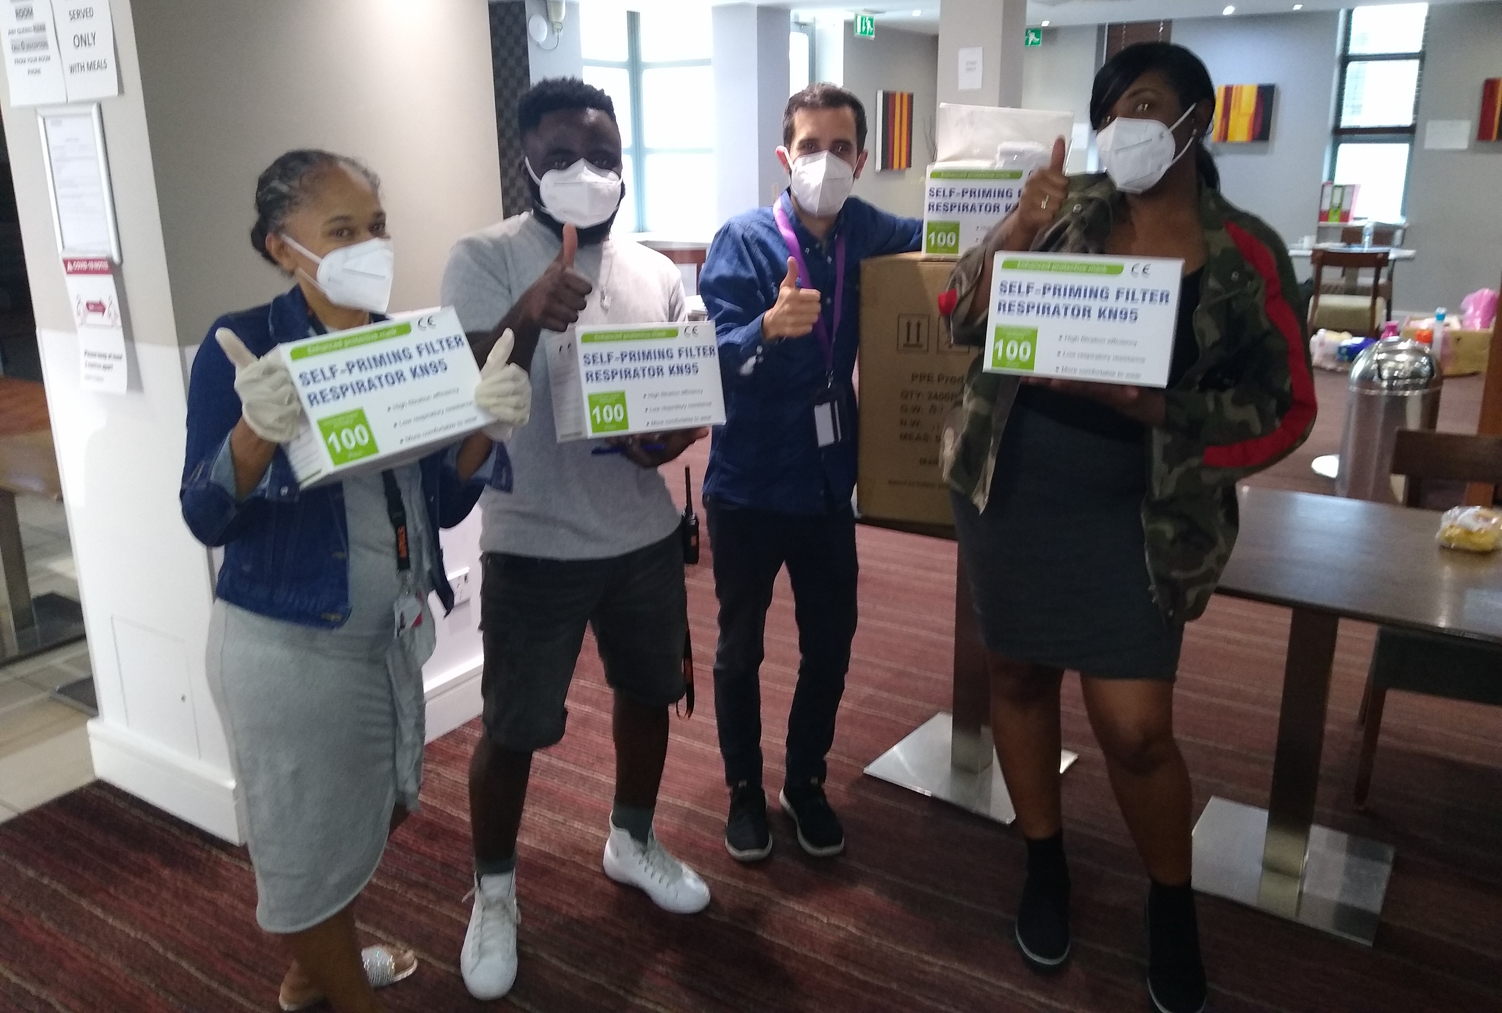 Staff members at an InterContinental Hotel in London with KN95 masks donated by Direct Relief. (Courtesy Photo via the Greater London Authority)